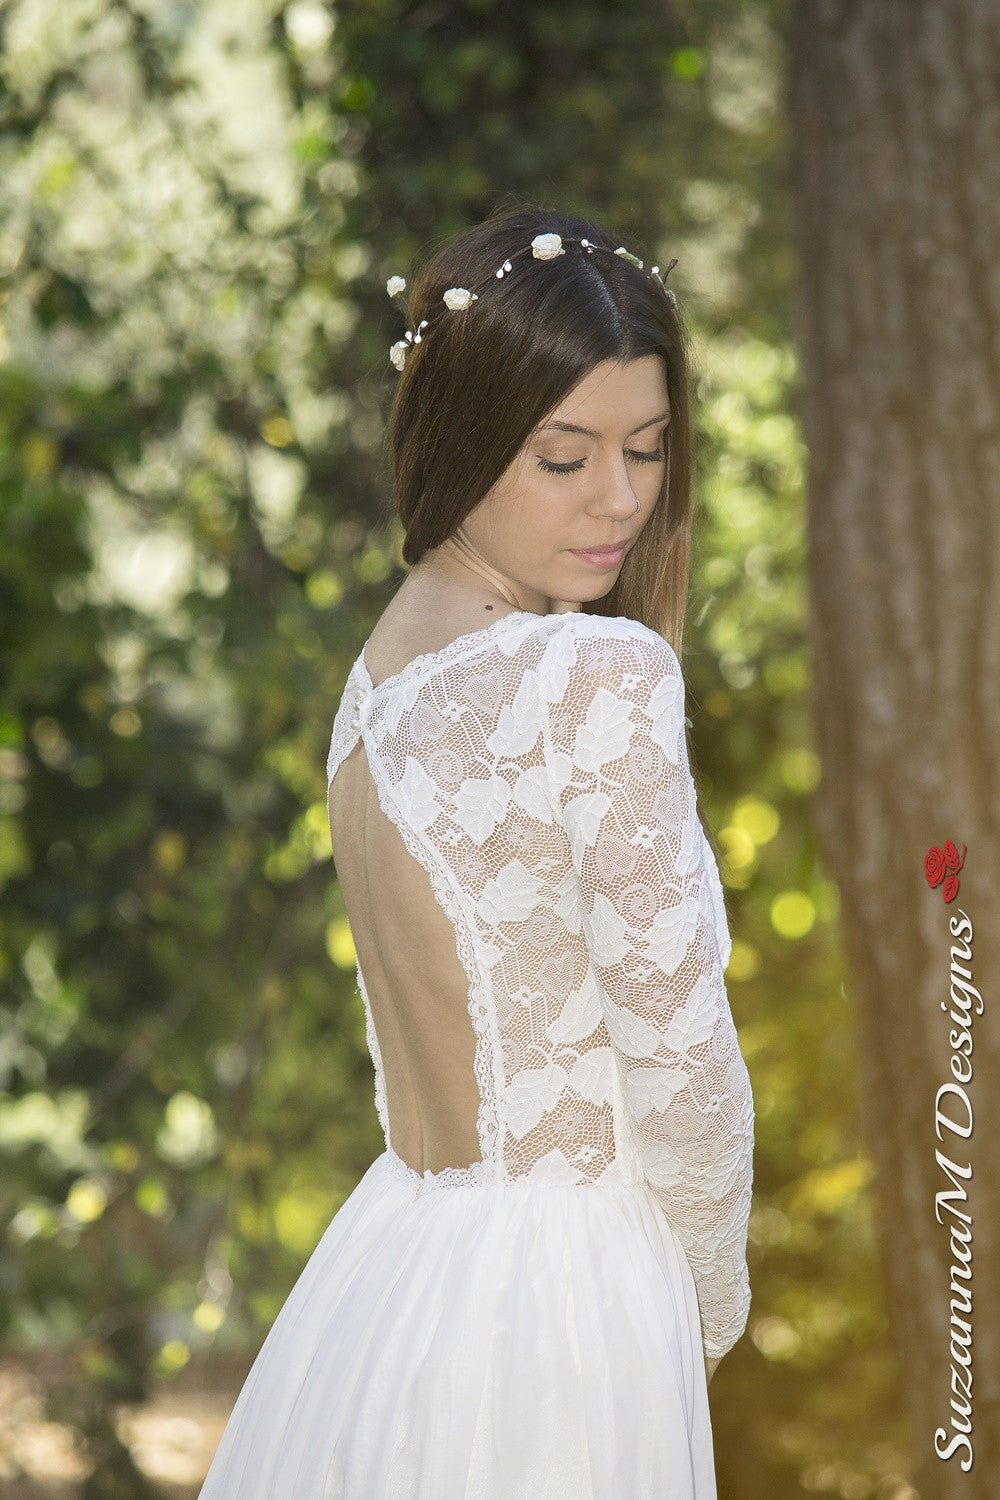 Agape Handmade Vintage Wedding Dress